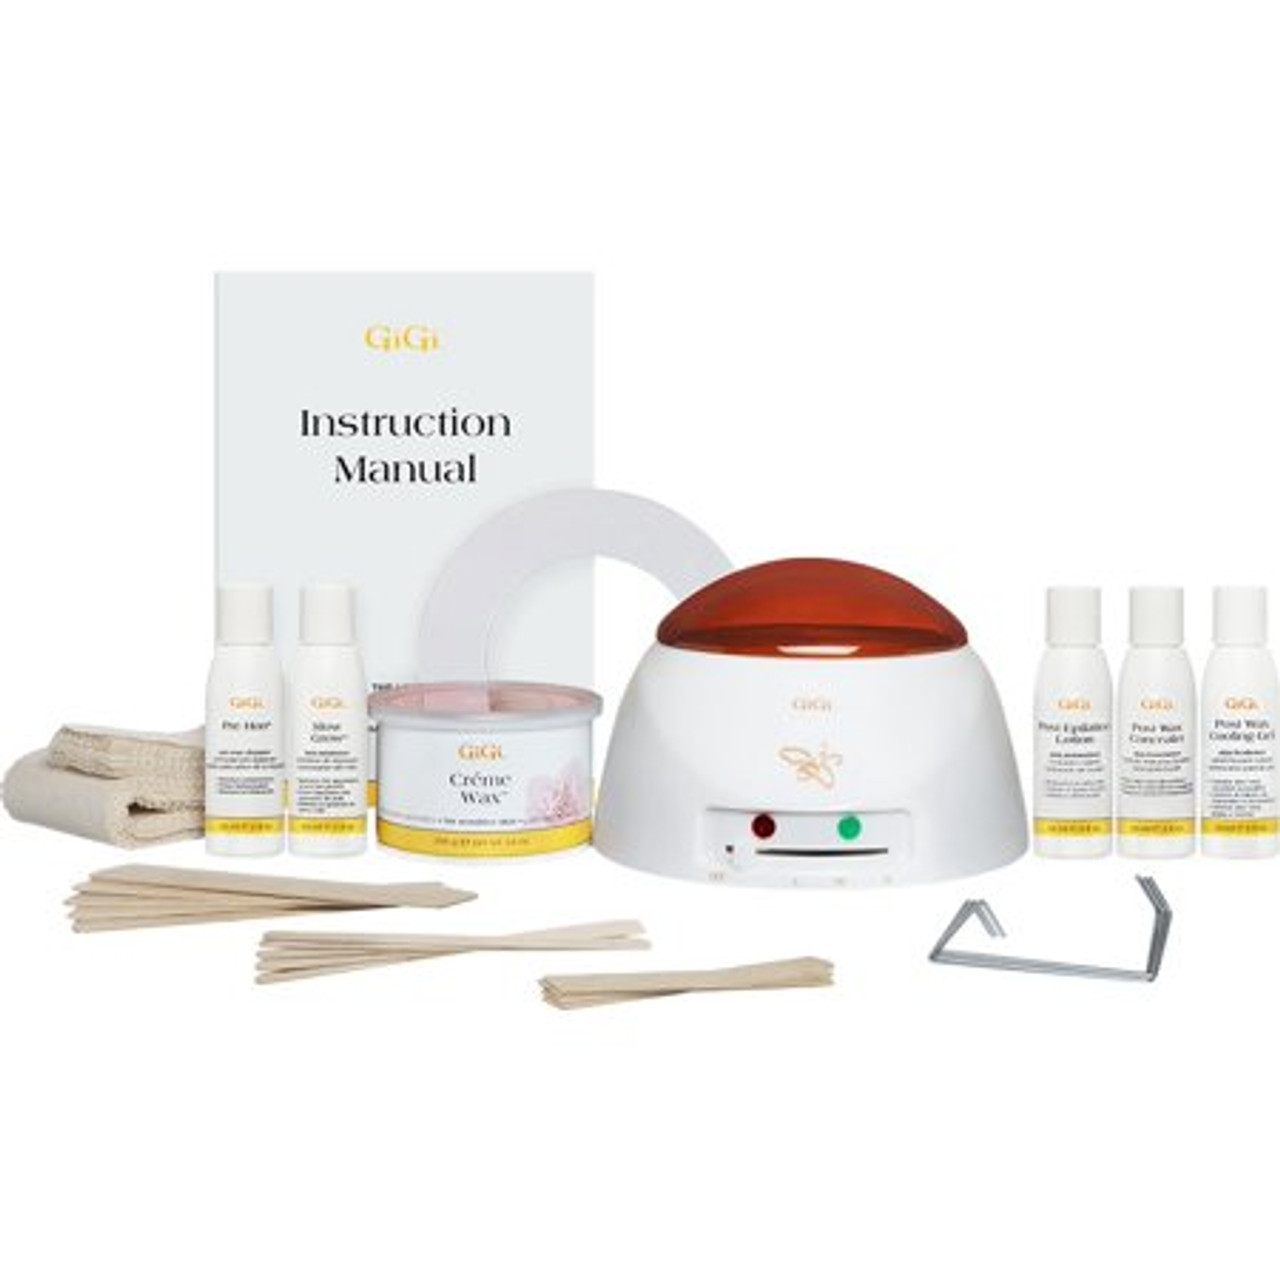 GiGi Mini Pro Wax Kit